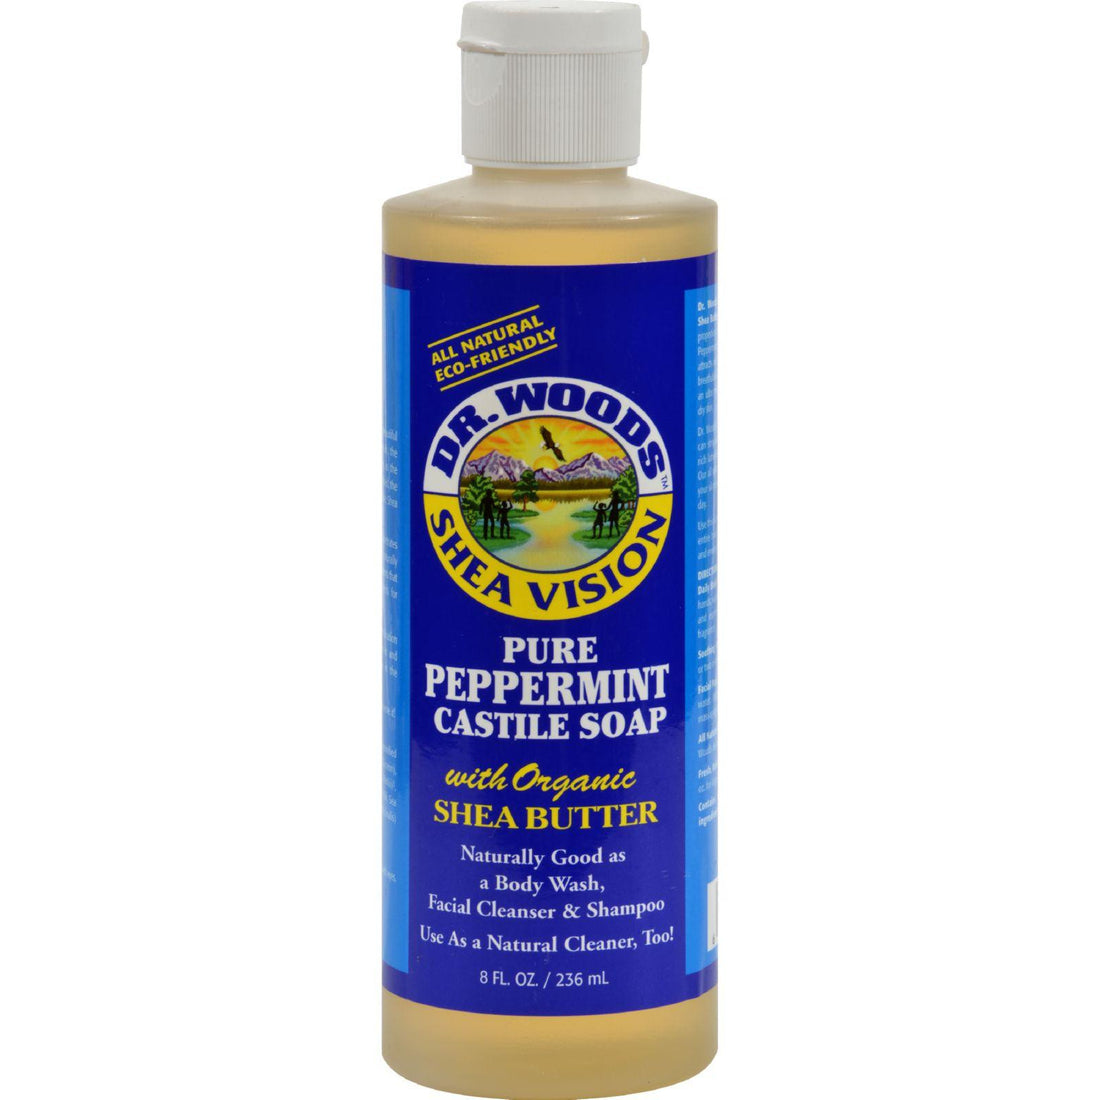 Mother Mantis: Dr. Woods Shea Vision Pure Castile Soap Peppemint With Organic Shea Butter - 8 Fl Oz Dr. Woods